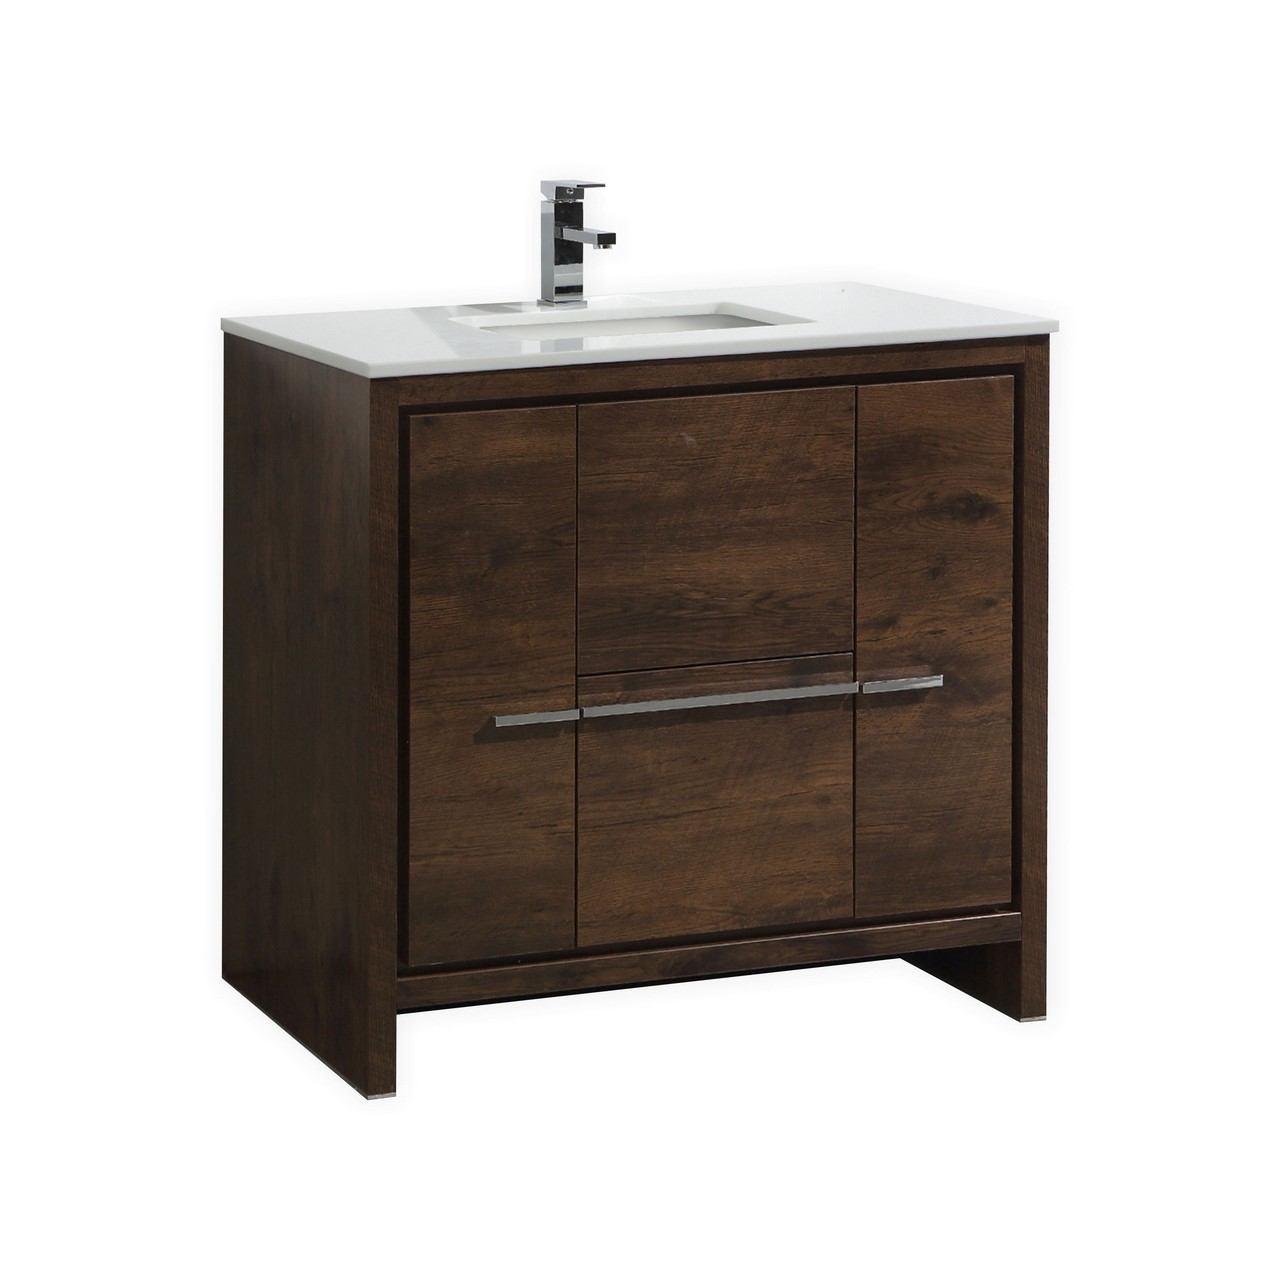 Kubebath dolce 36 rose wood modern bathroom vanity - Contemporary european designer bathroom vanities ...